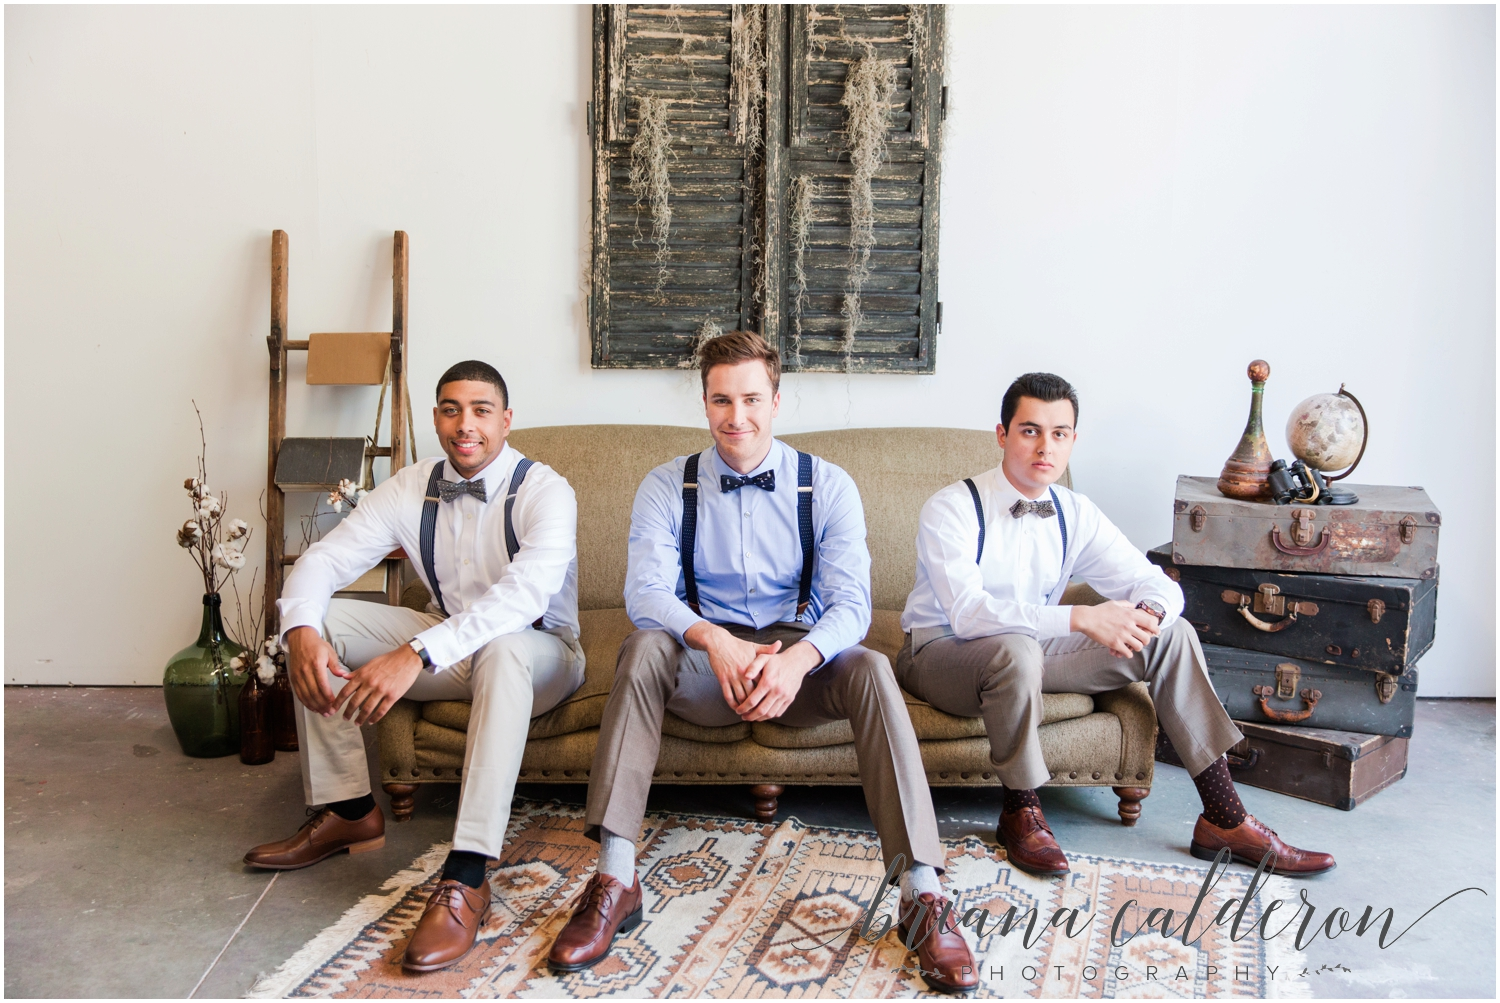 Dapper bachelor party inspiration styled shoot. Photos by Briana Calderon Photography.